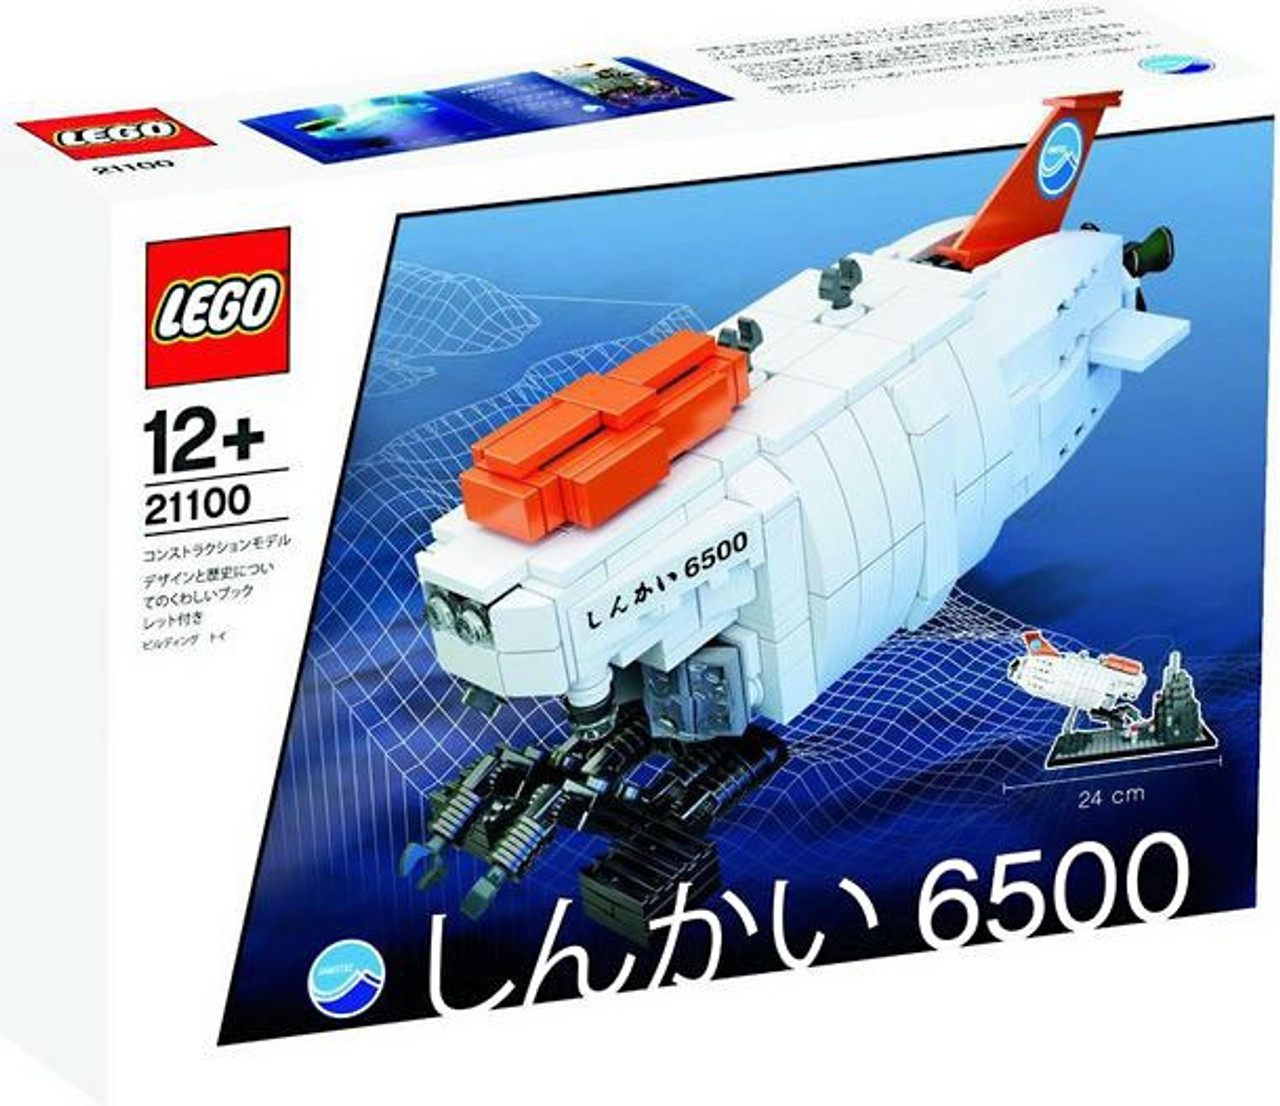 LEGO Shinkai 6500 Submarine Set #21100